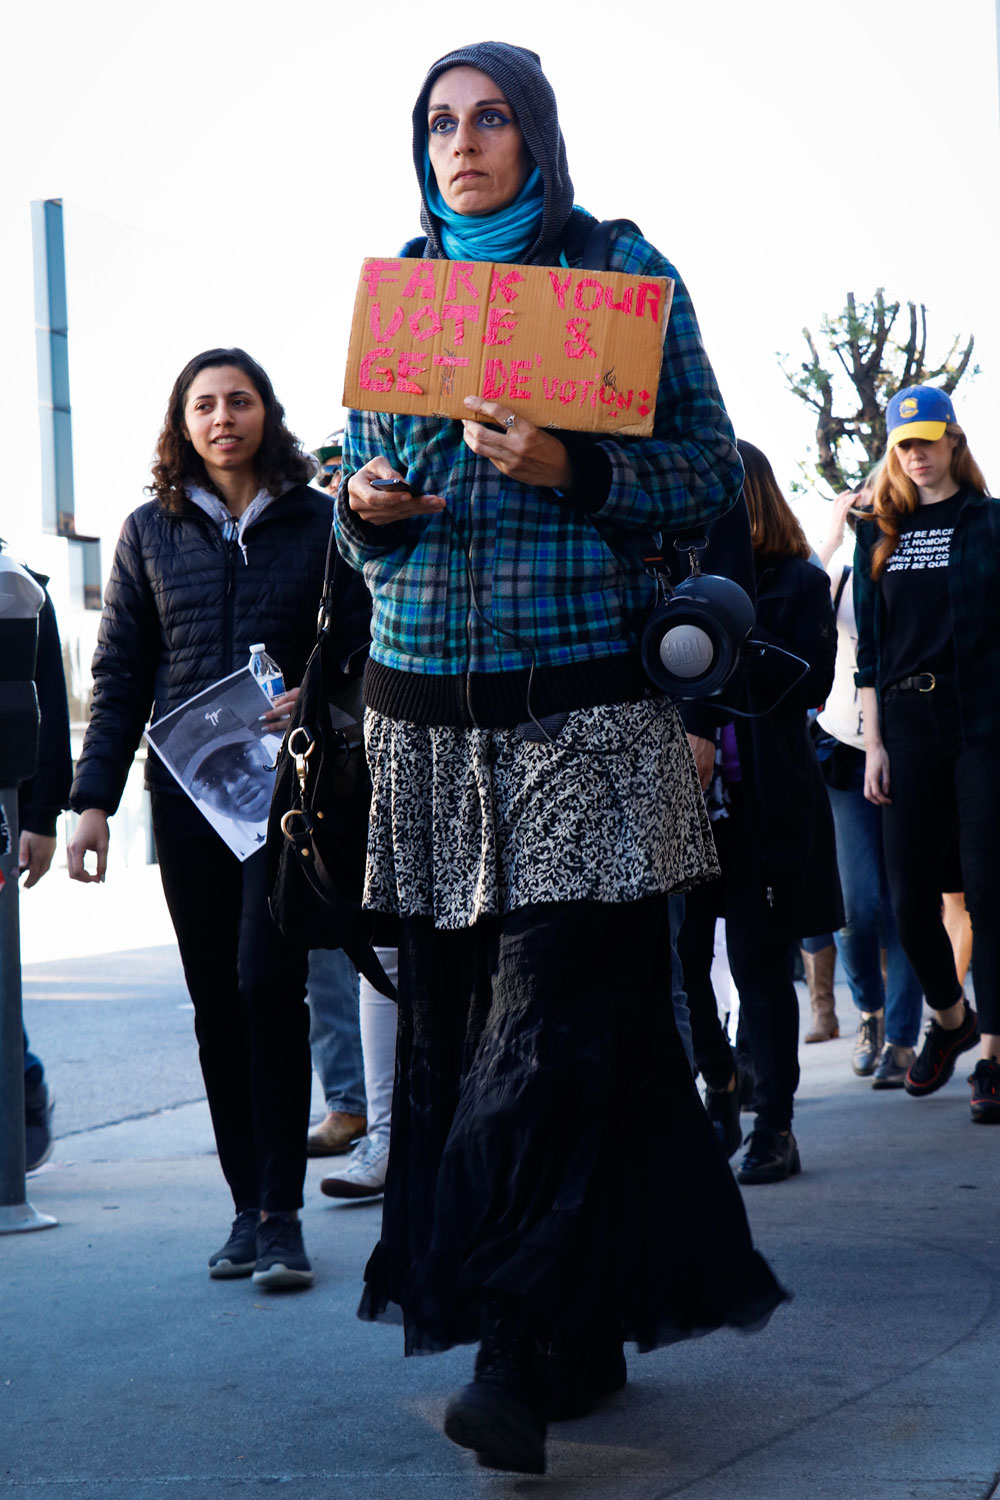 A protester marches up Westwood Blvd playing music. Photo credit: Elaine Sanders